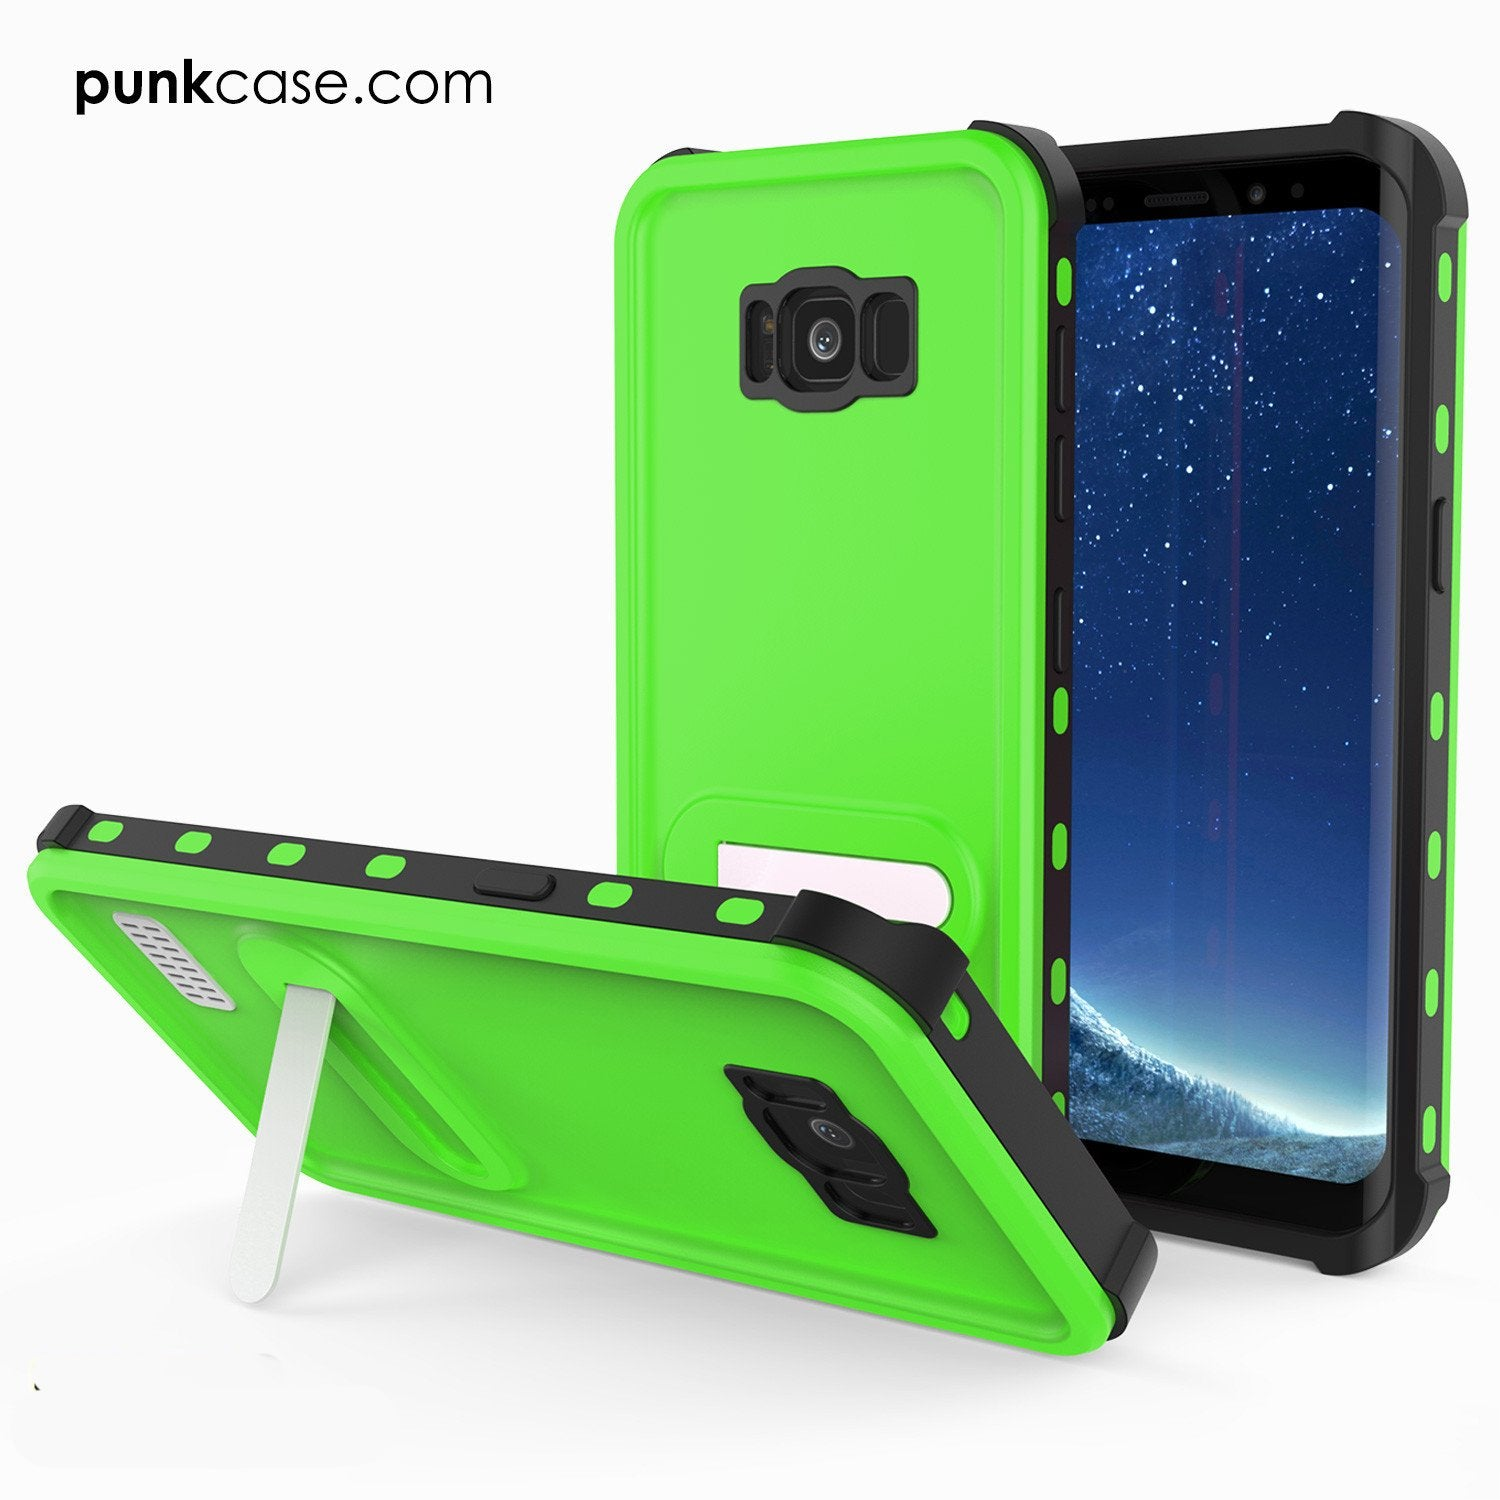 Galaxy S8 Waterproof Case, Punkcase KickStud Series Armor Cover[Green]